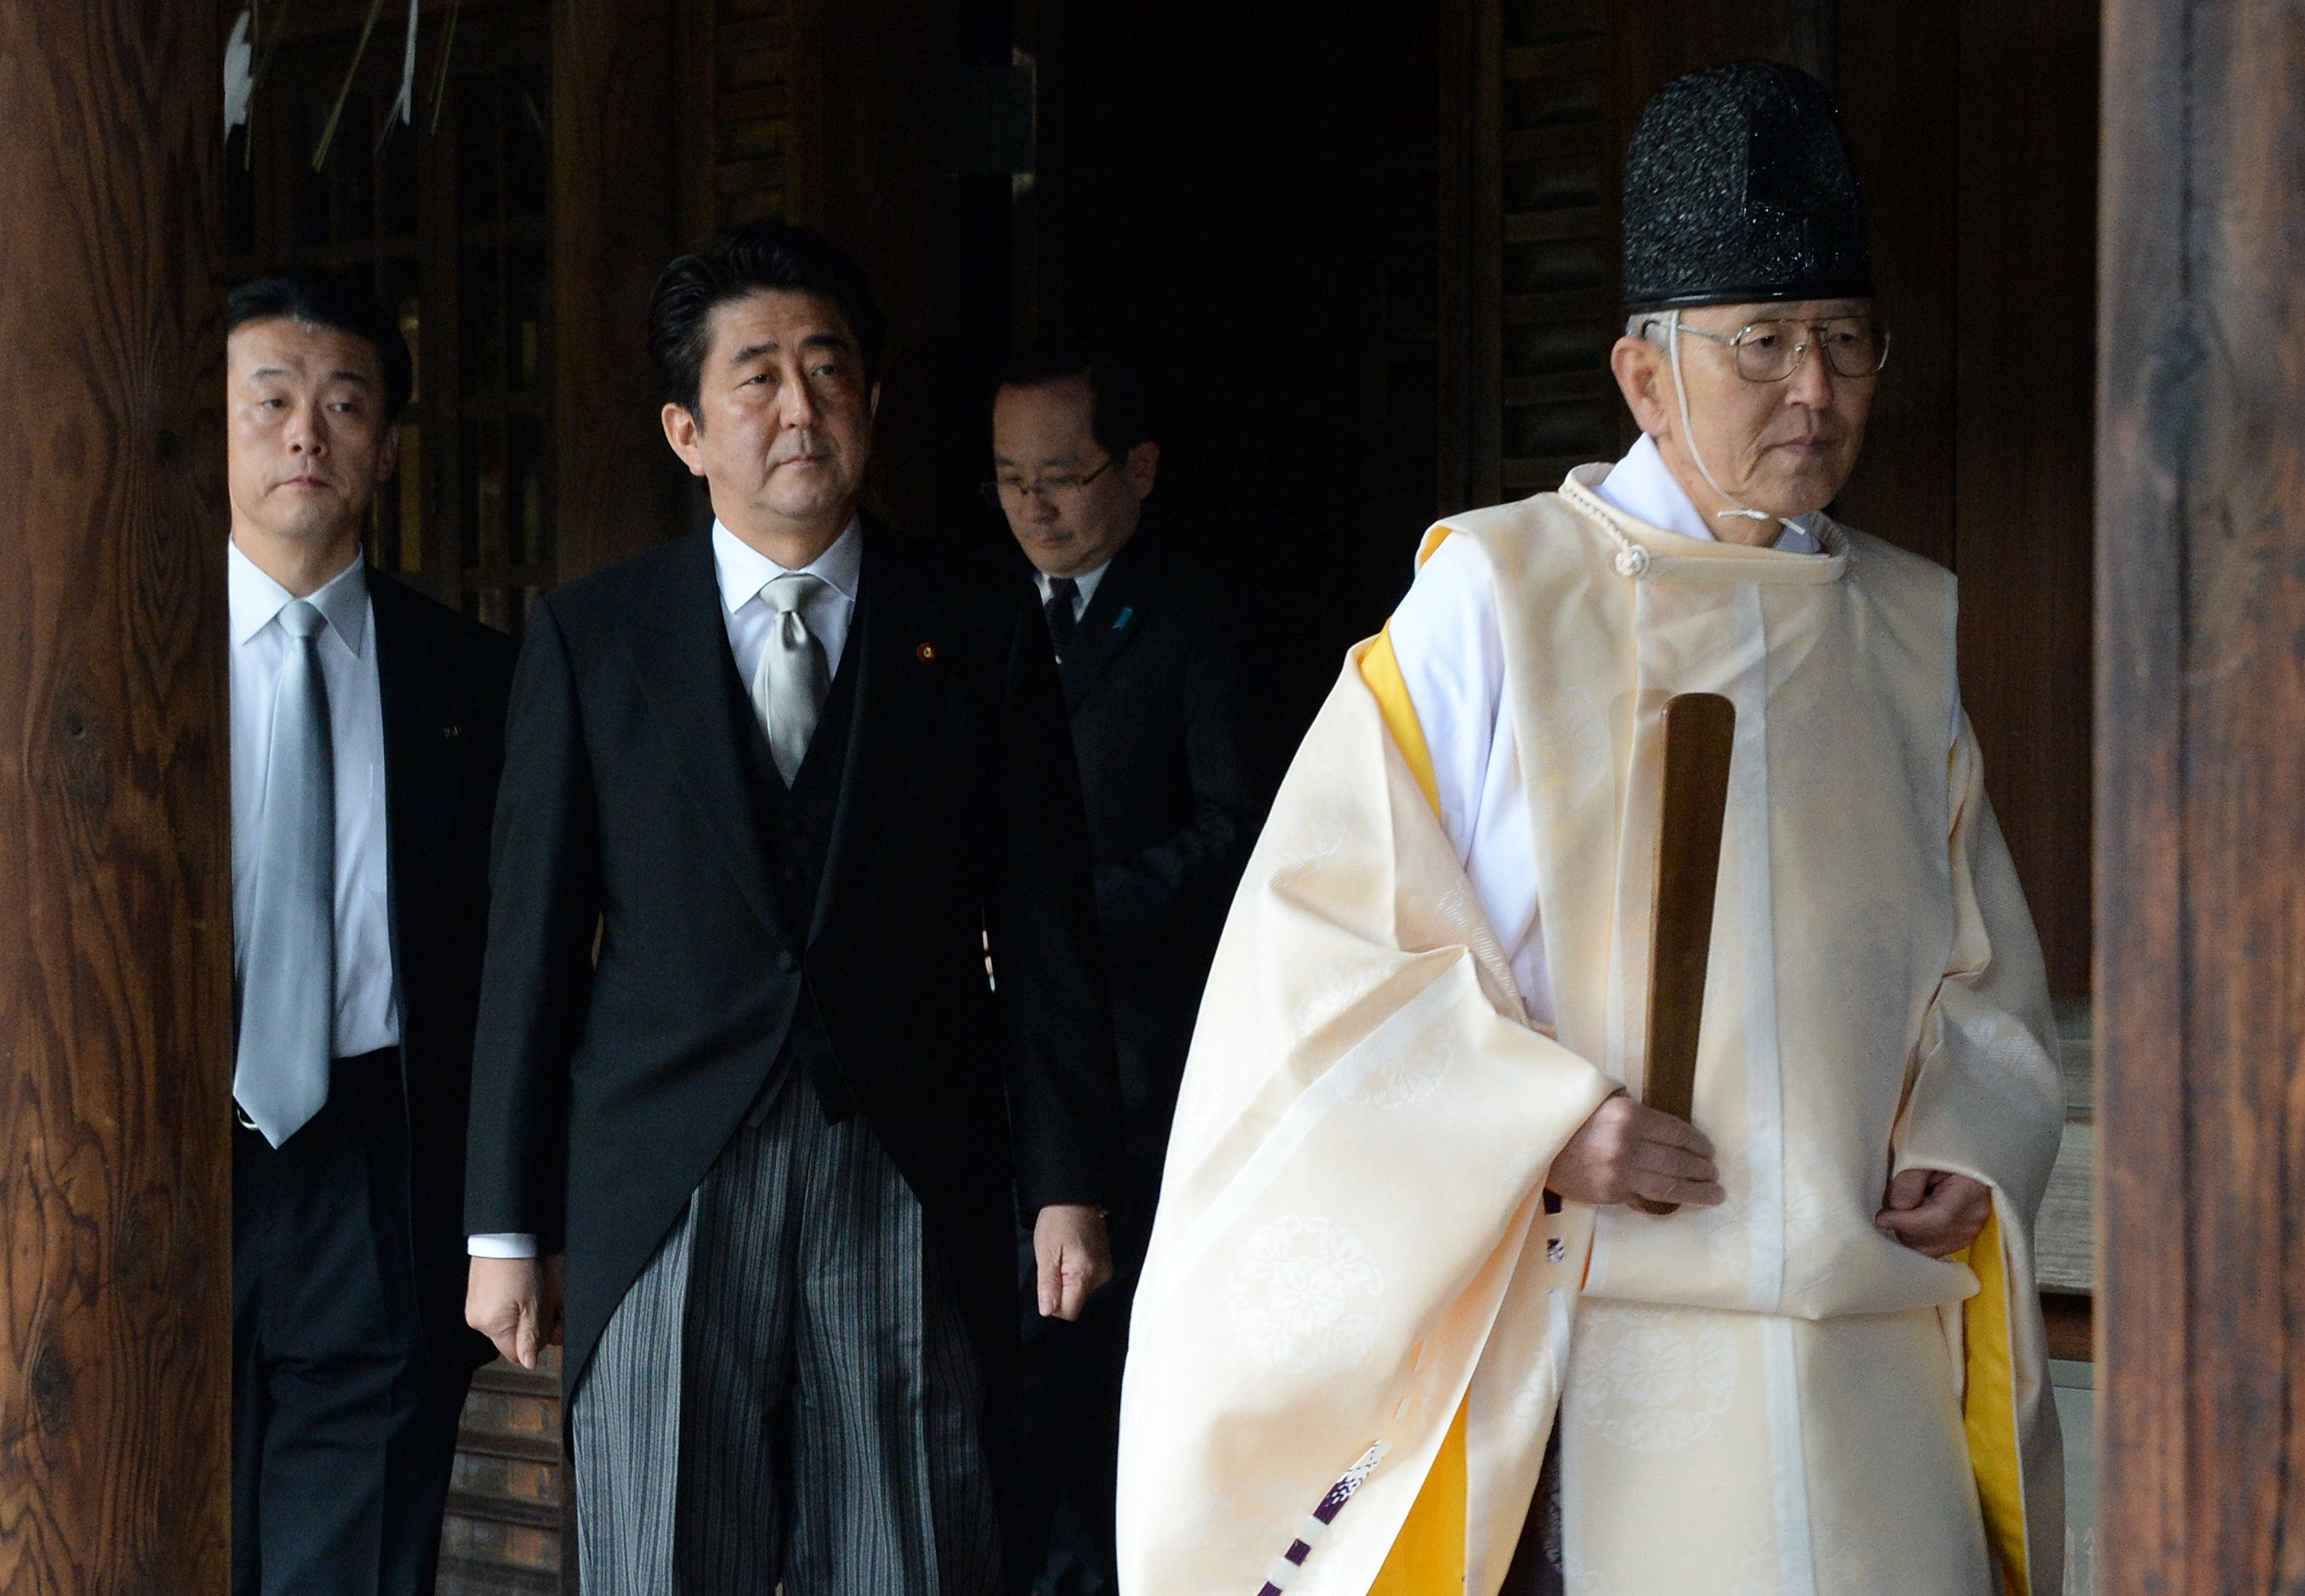 A Shinto priest leads Prime Minister Shinzo Abe during his visit to the controversial Yasukuni Shrine in Tokyo on Dec. 26 last year. | AFP-JIJI